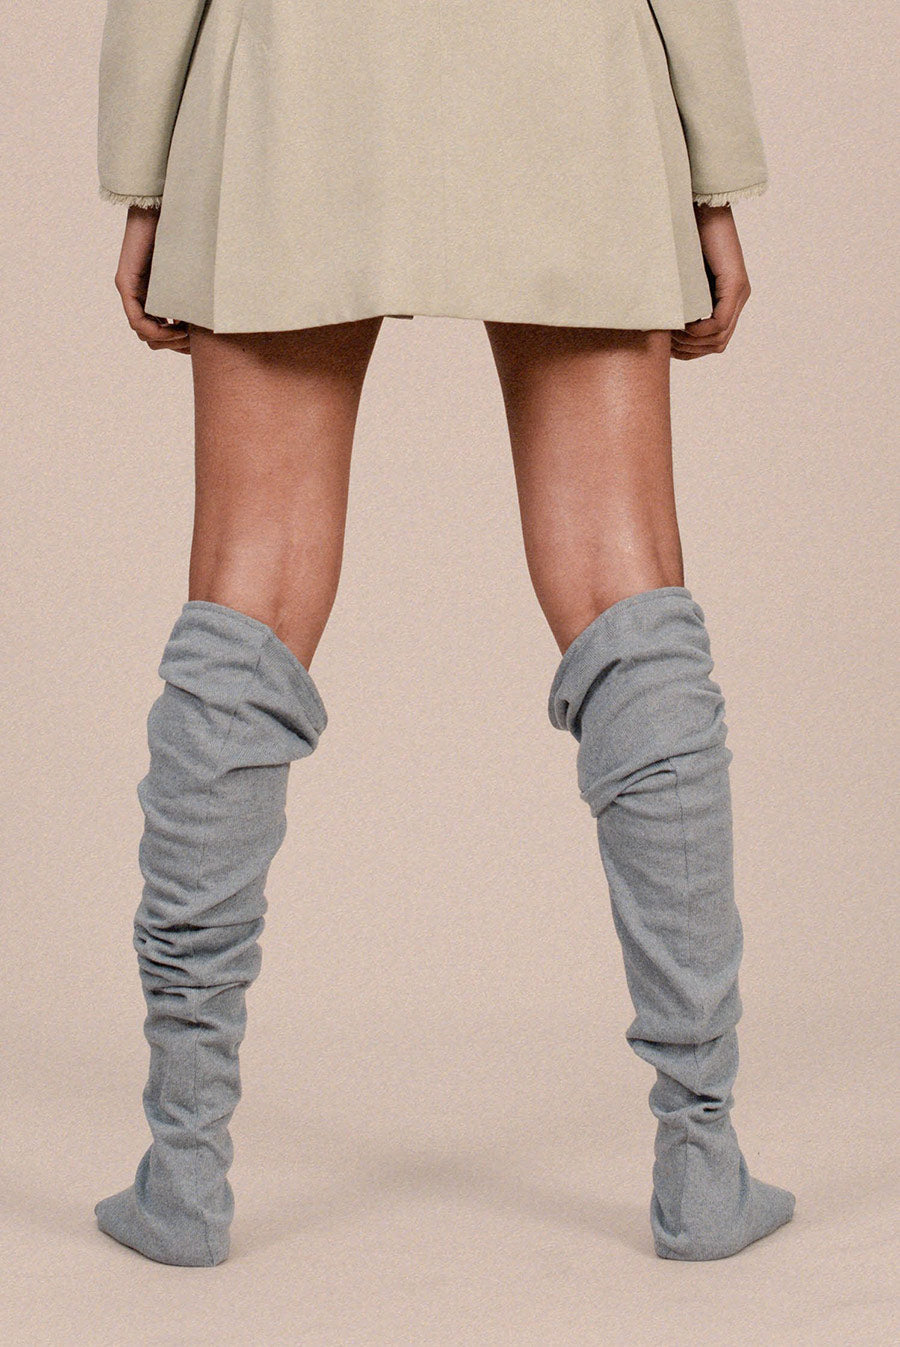 KNEE-HIGH SOCKS - PRE ORDER